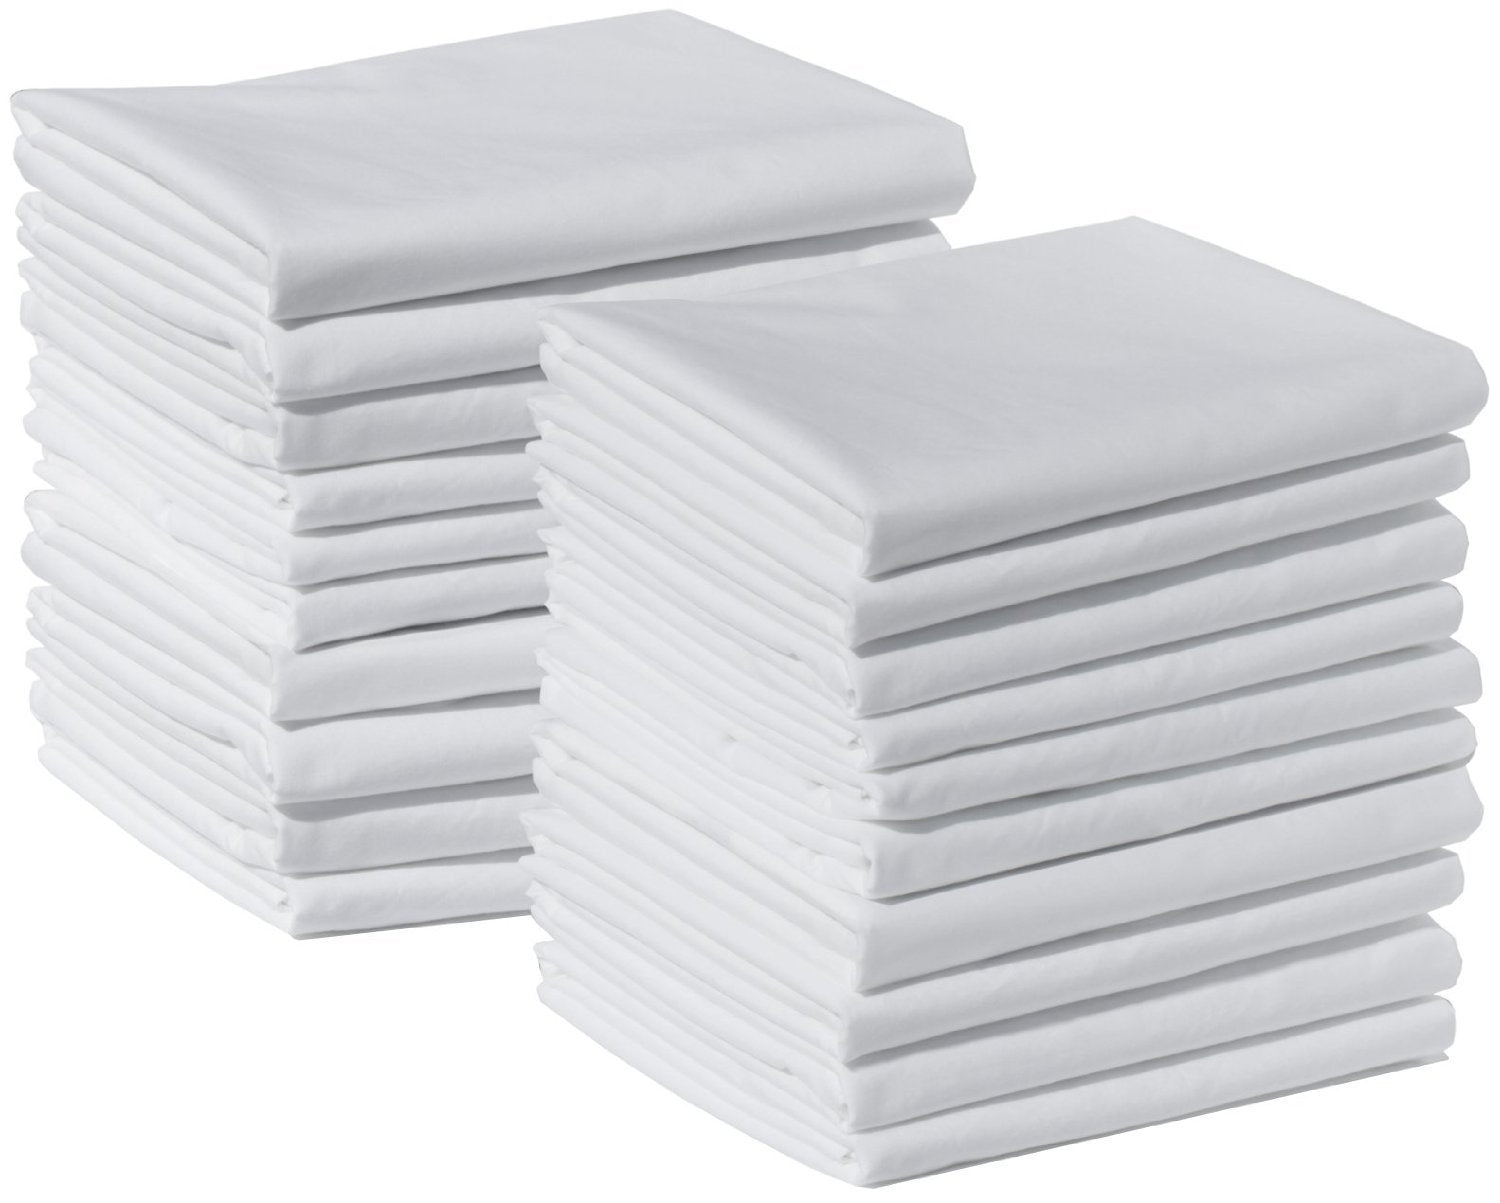 American Pillowcase Brushed Microfiber Standard Size Pillow Case Set, Pack of 140, White